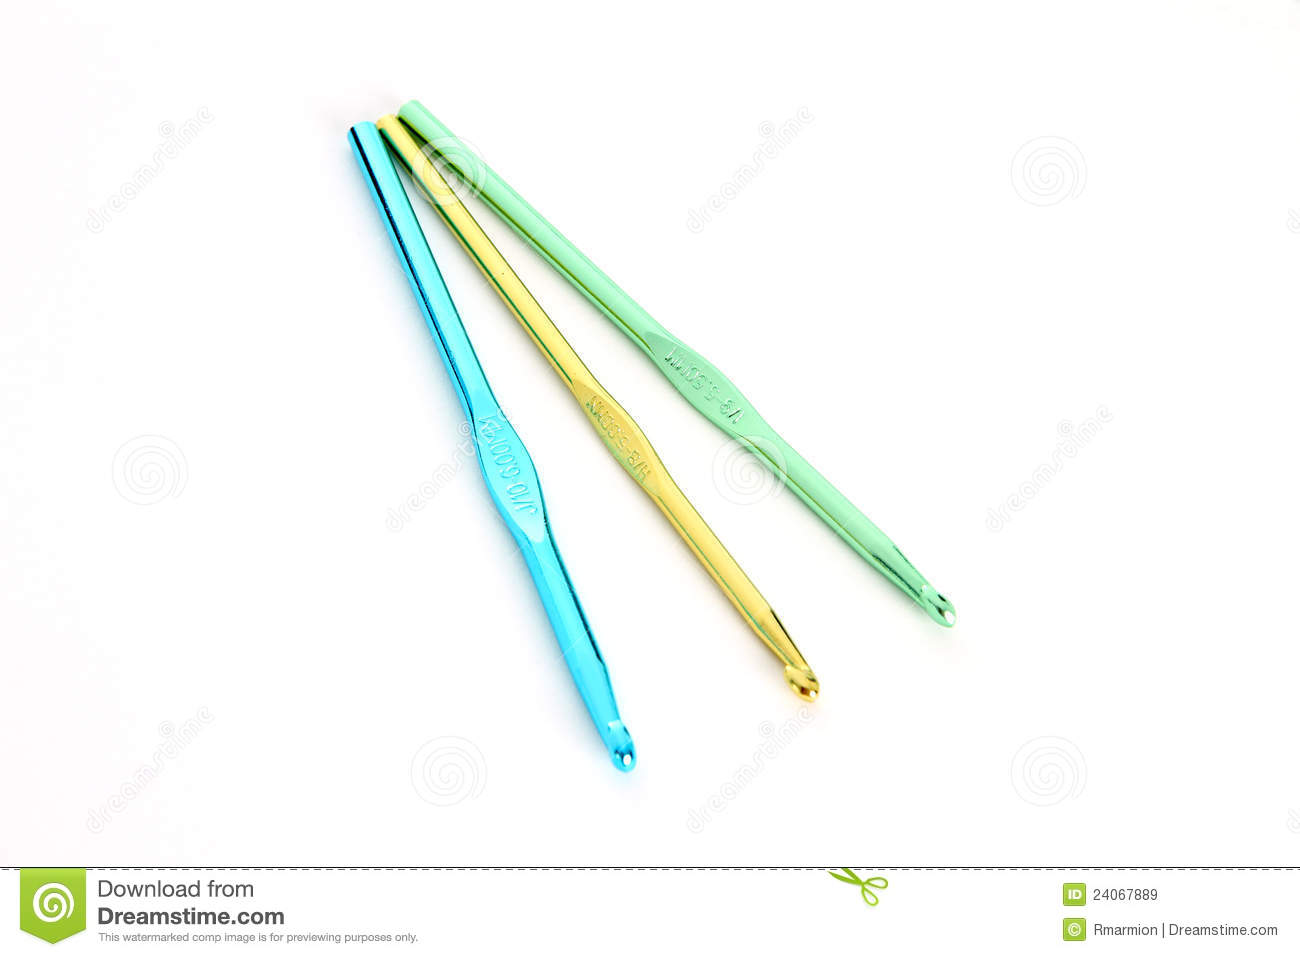 Crocheting Needles : Crochet Needles Royalty Free Stock Images - Image: 24067889